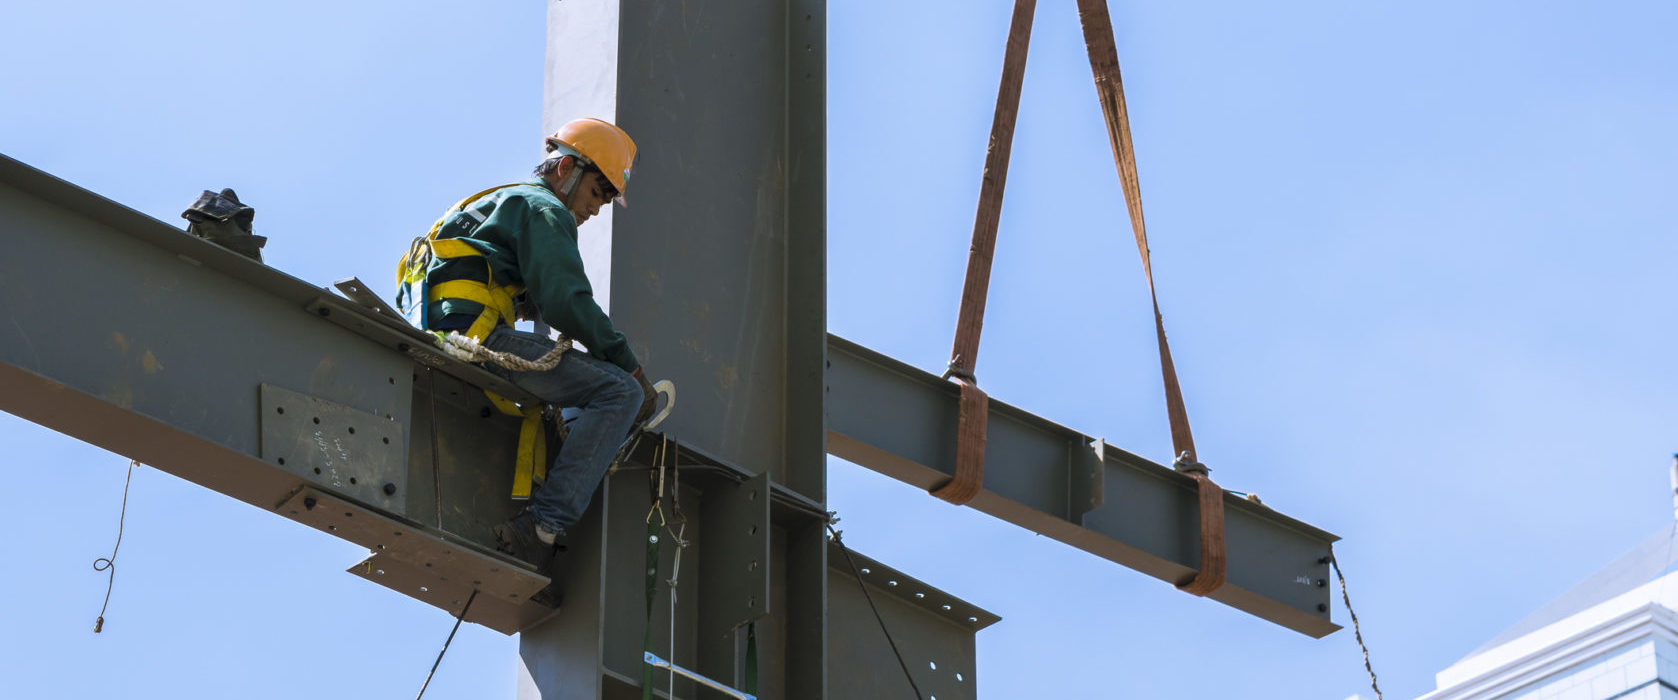 Builder workers in safety protective assemble metal construction frame